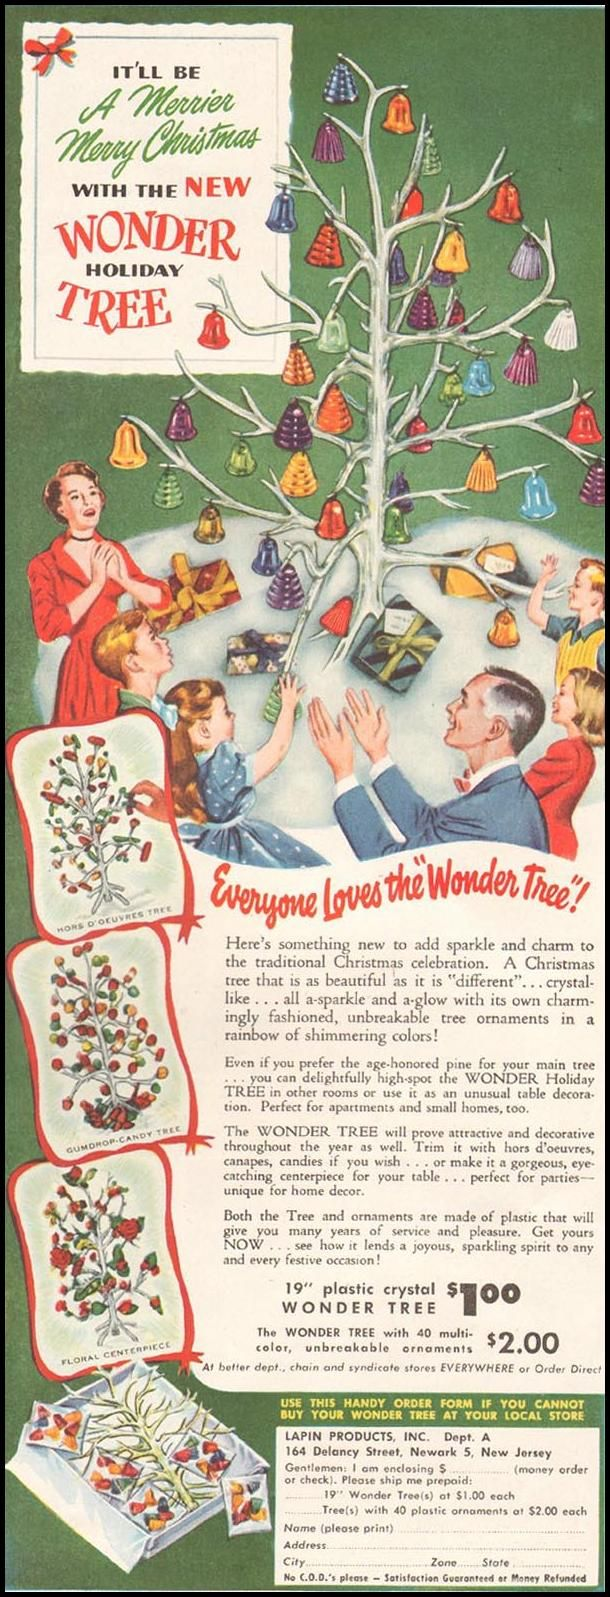 Back to previous page home garfield holiday celebrations - Wonder Holiday Tree Ladies Home Journal Ad Christmas 1950